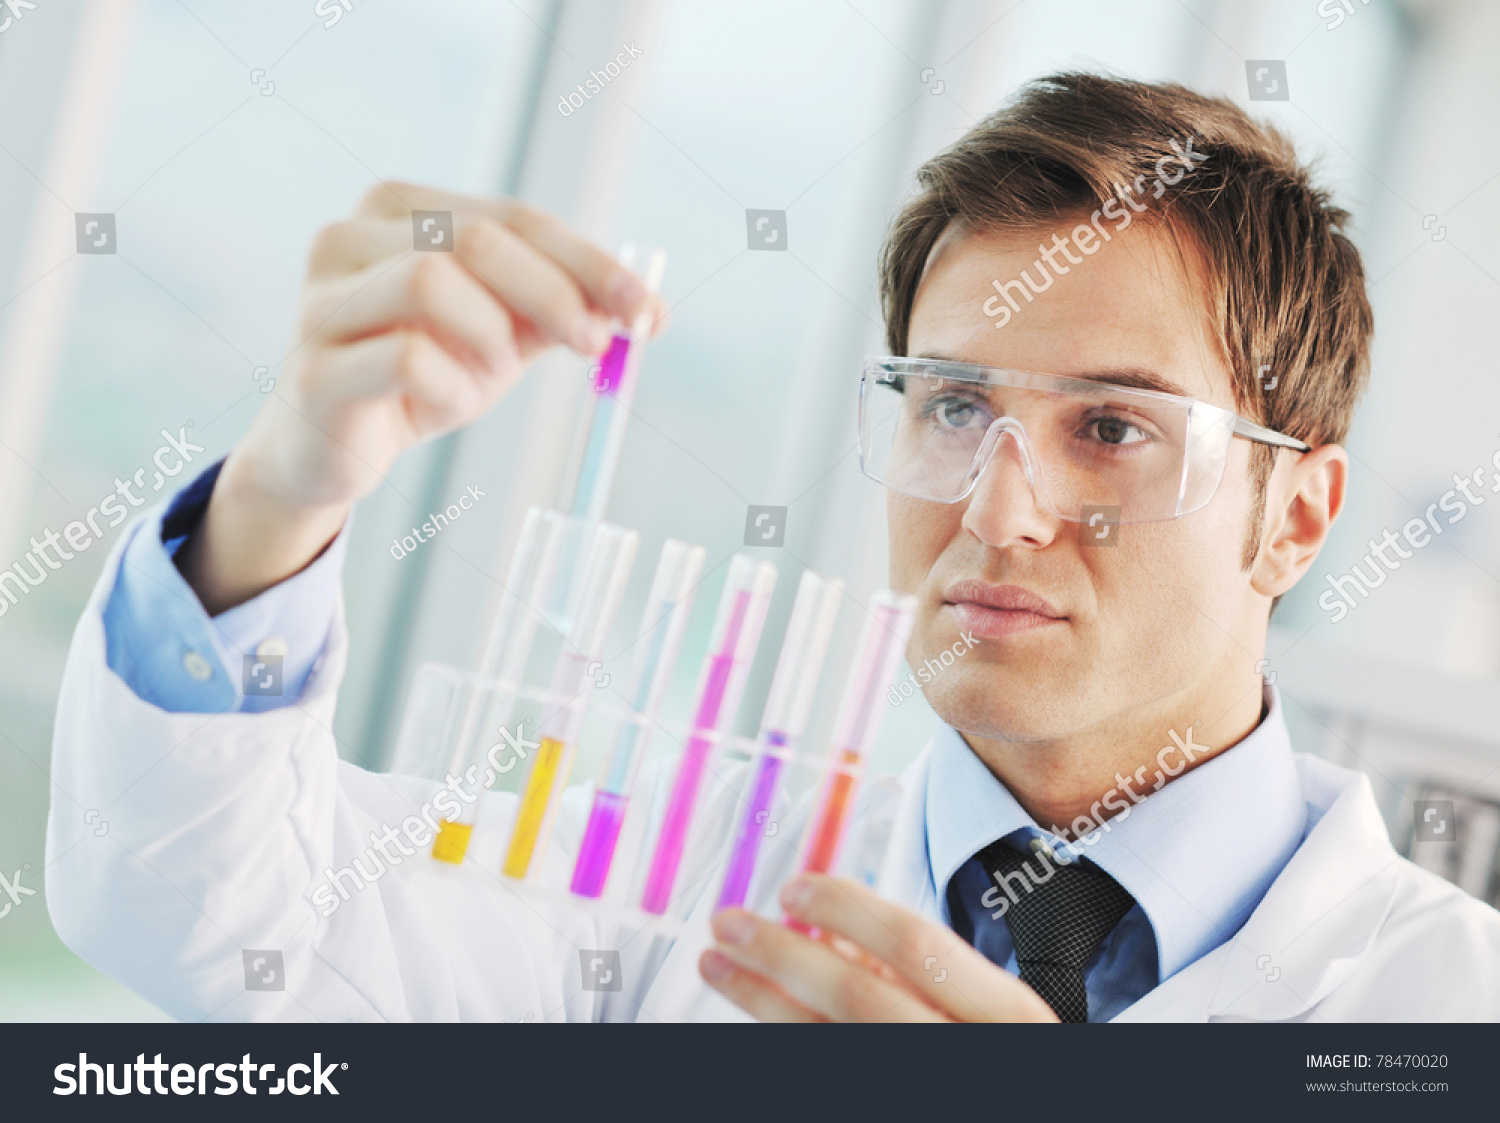 doctor science chemistry research bright student education laboratory shutterstock representing medicine concept